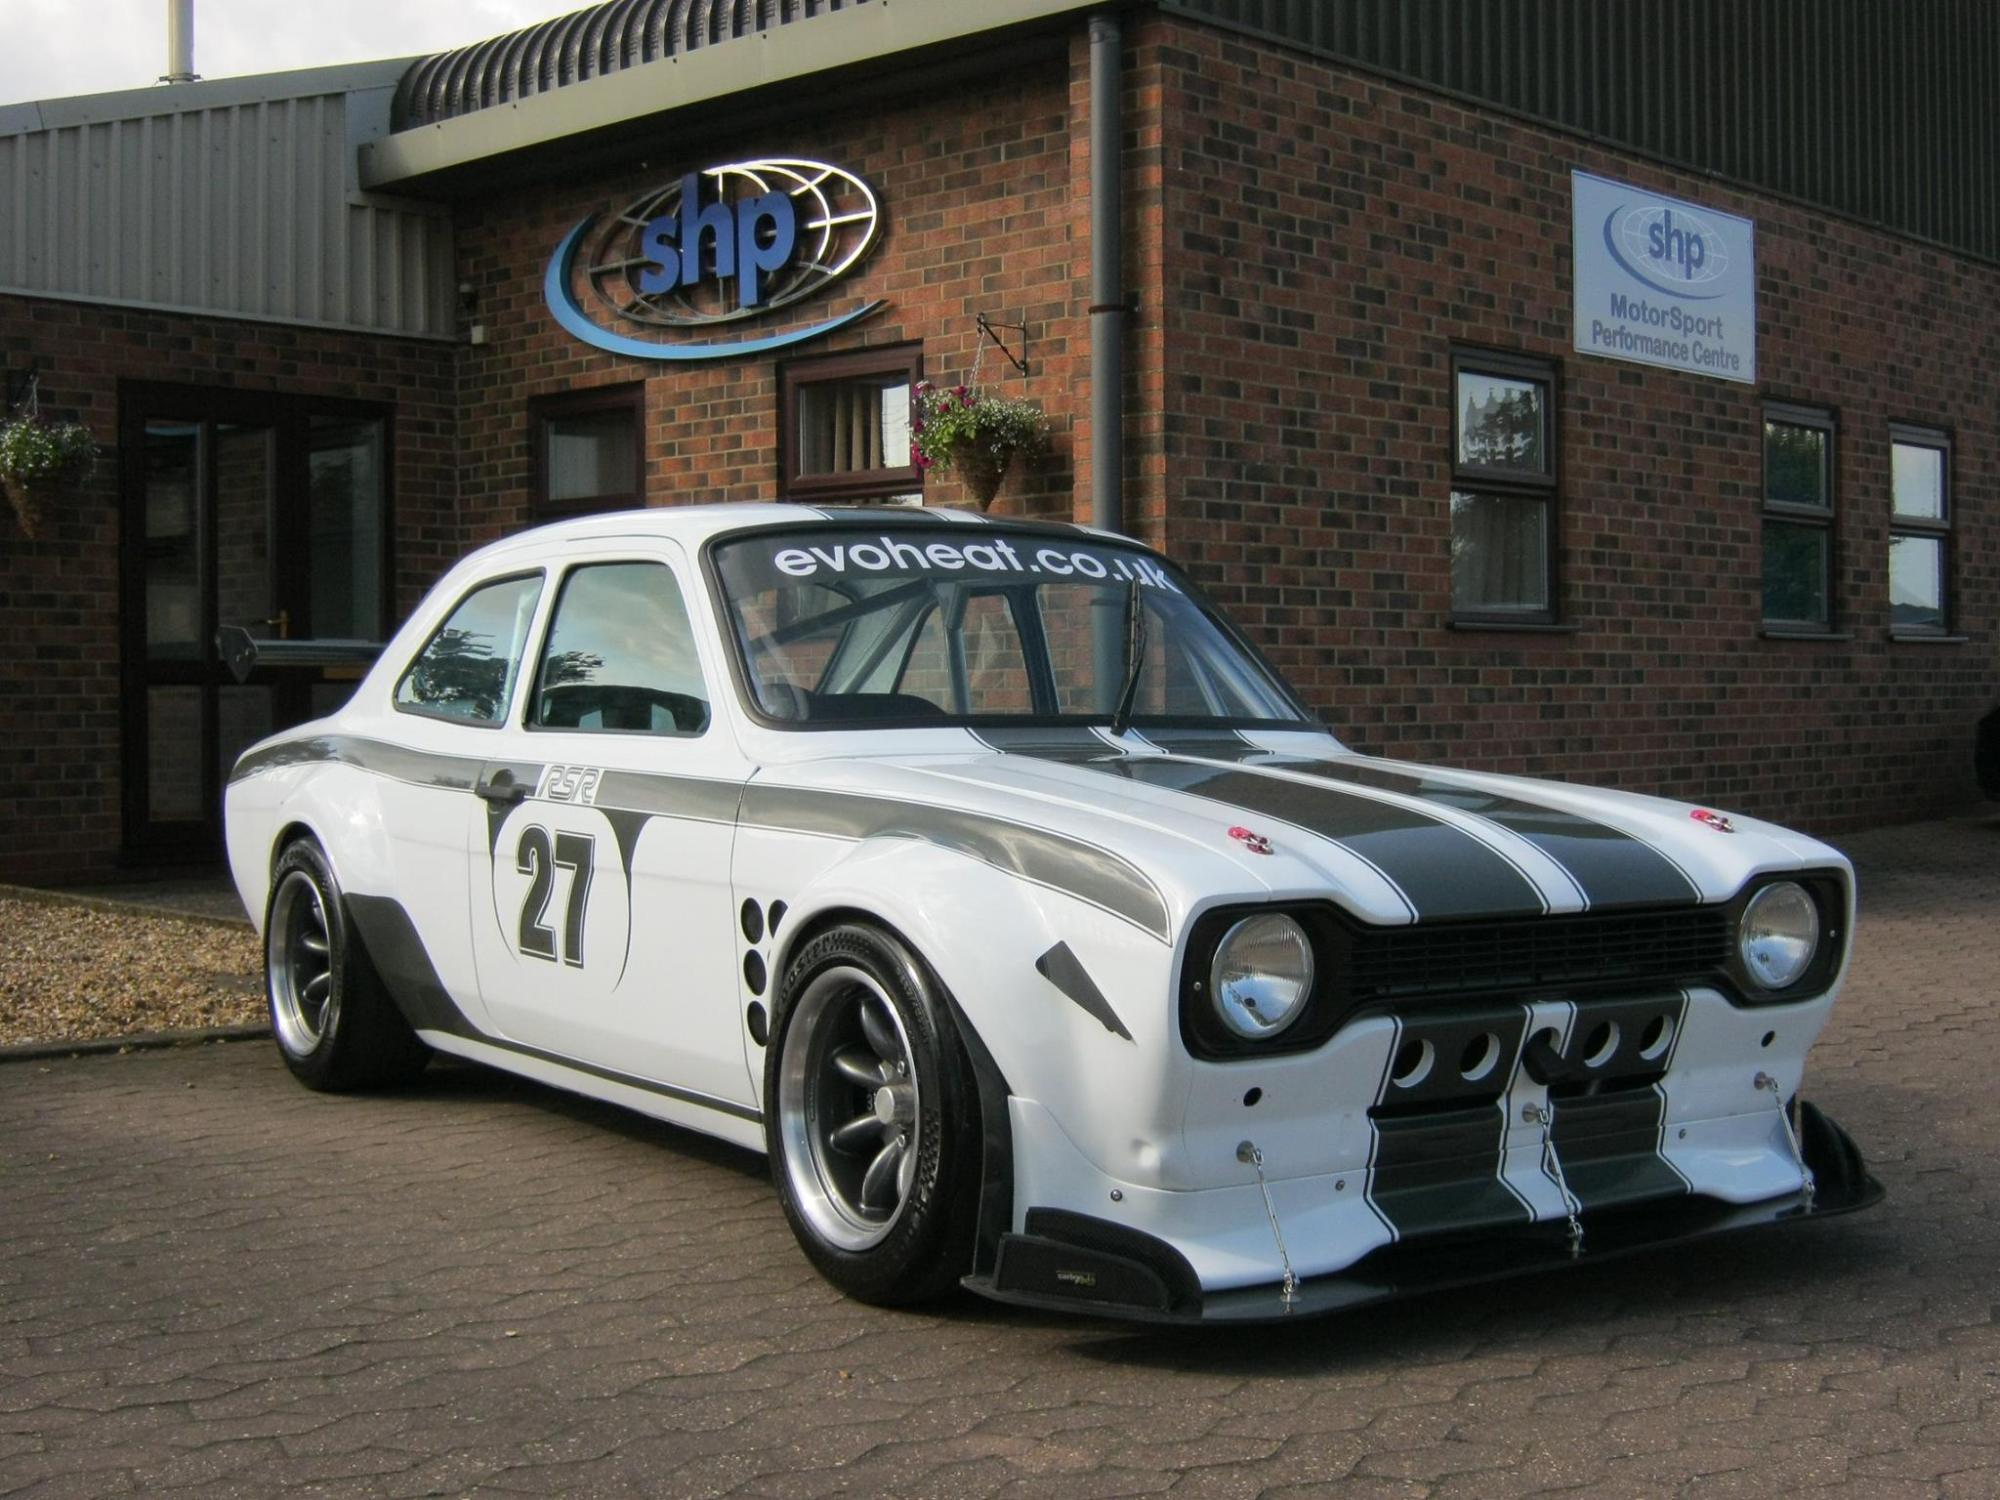 hight resolution of this ford escort might seem like a modified original but it s a custom race car built by shp engineering it starts with a fiberglass body and space frame